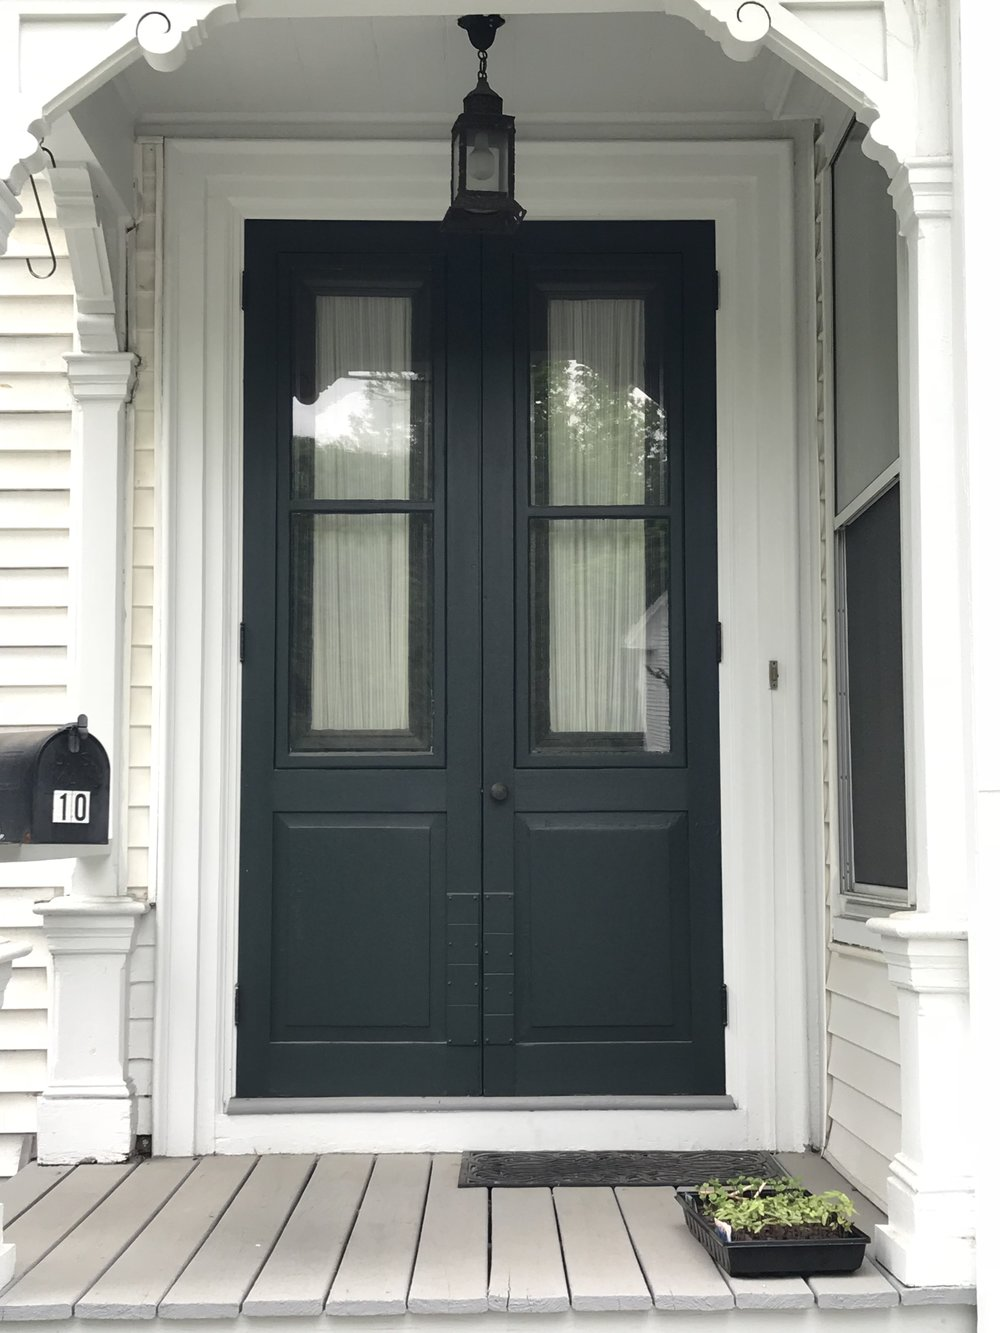 Brunswick doorway, showing storm doors that are well designed to match the original doors and provide for better efficiency. Photo: N. Barba